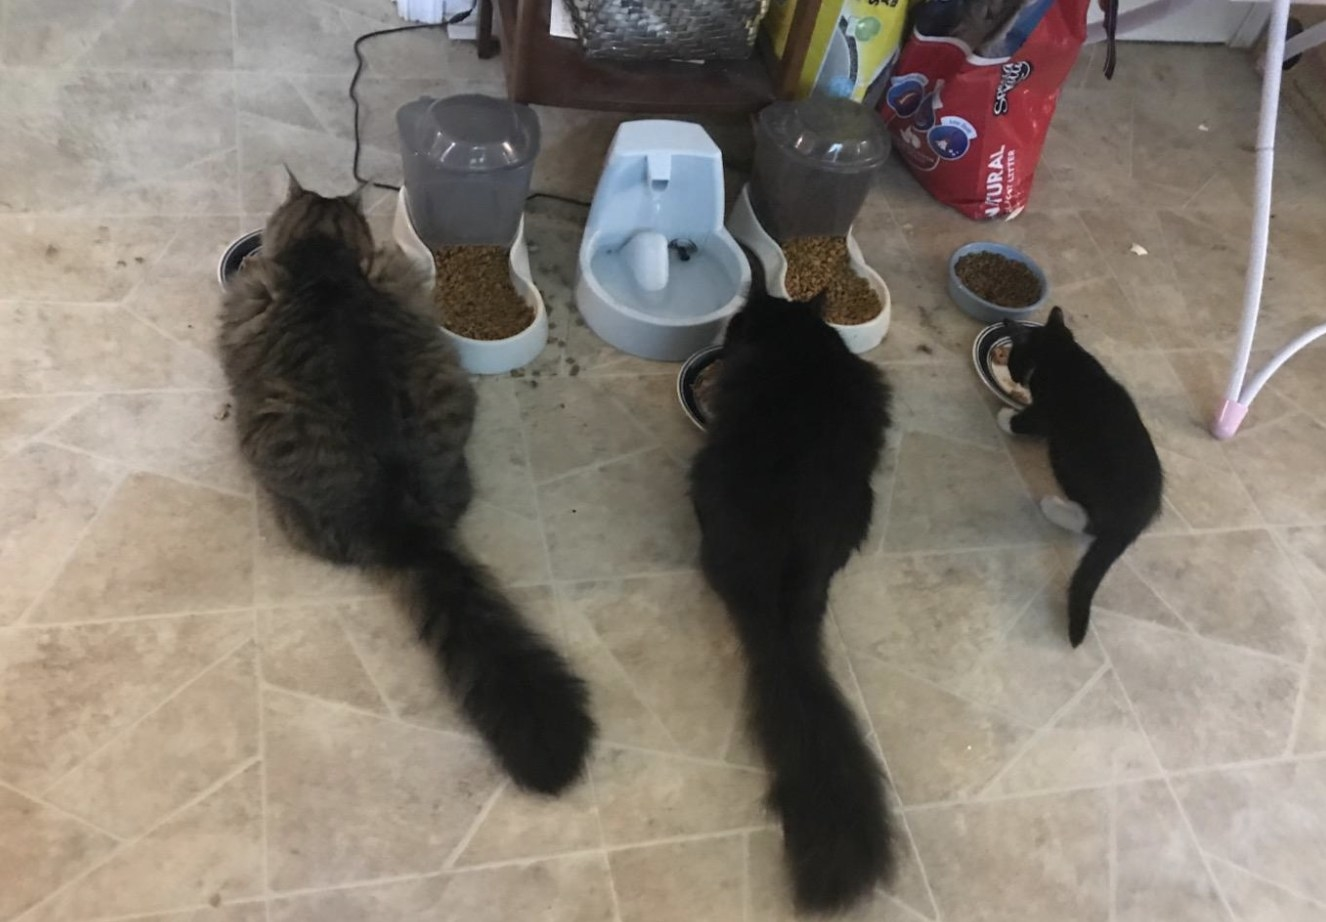 Three cats eating food next to two auto feeders